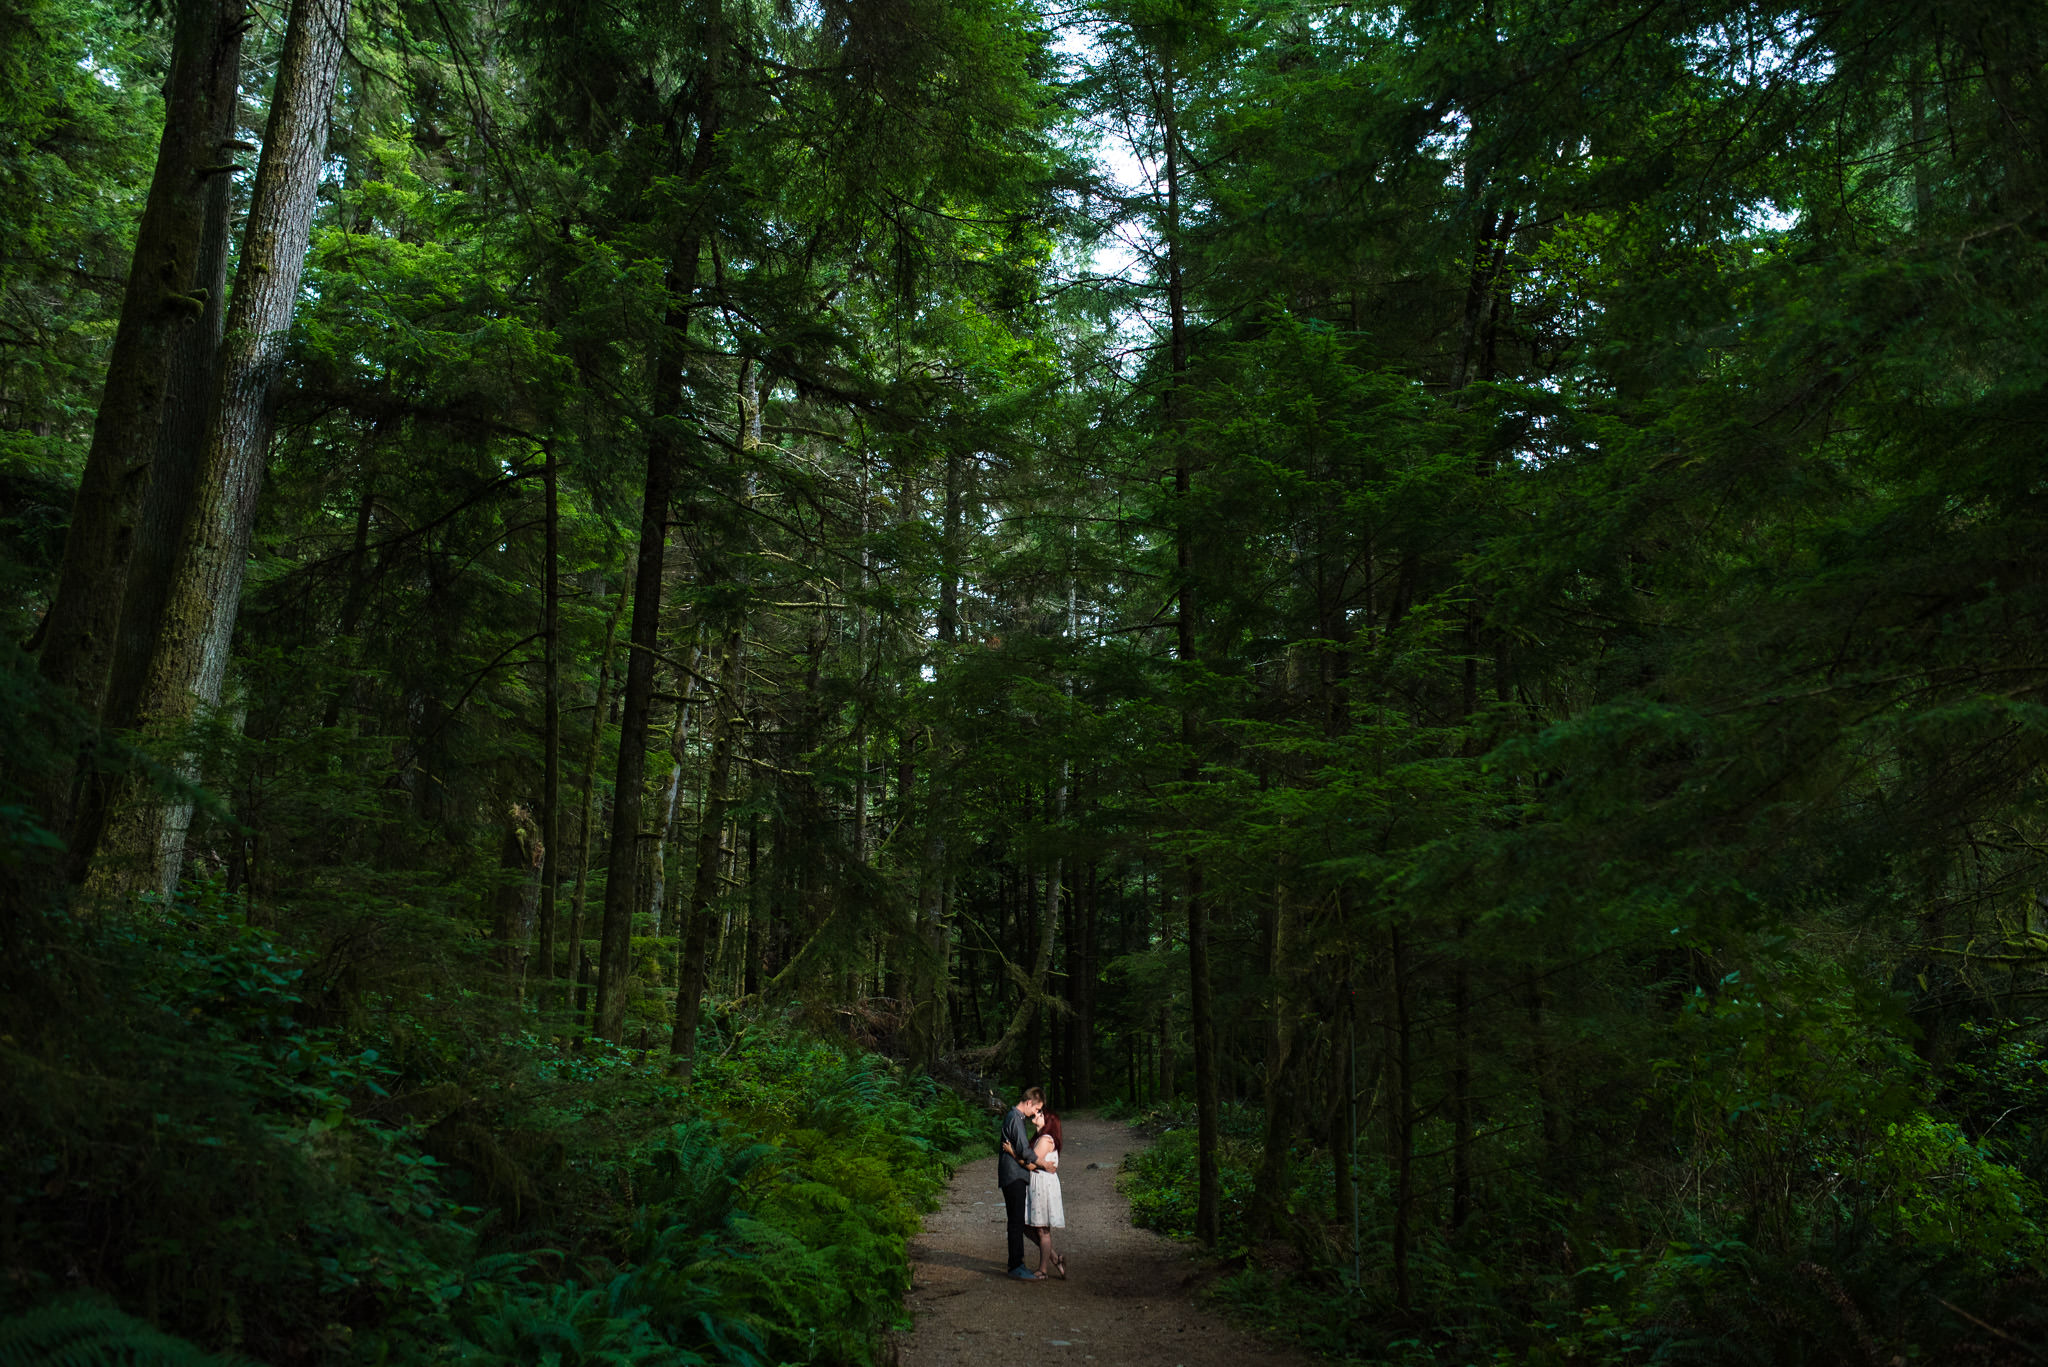 east-sooke-park-engagement-victoria-wedding-photographers-20.jpg